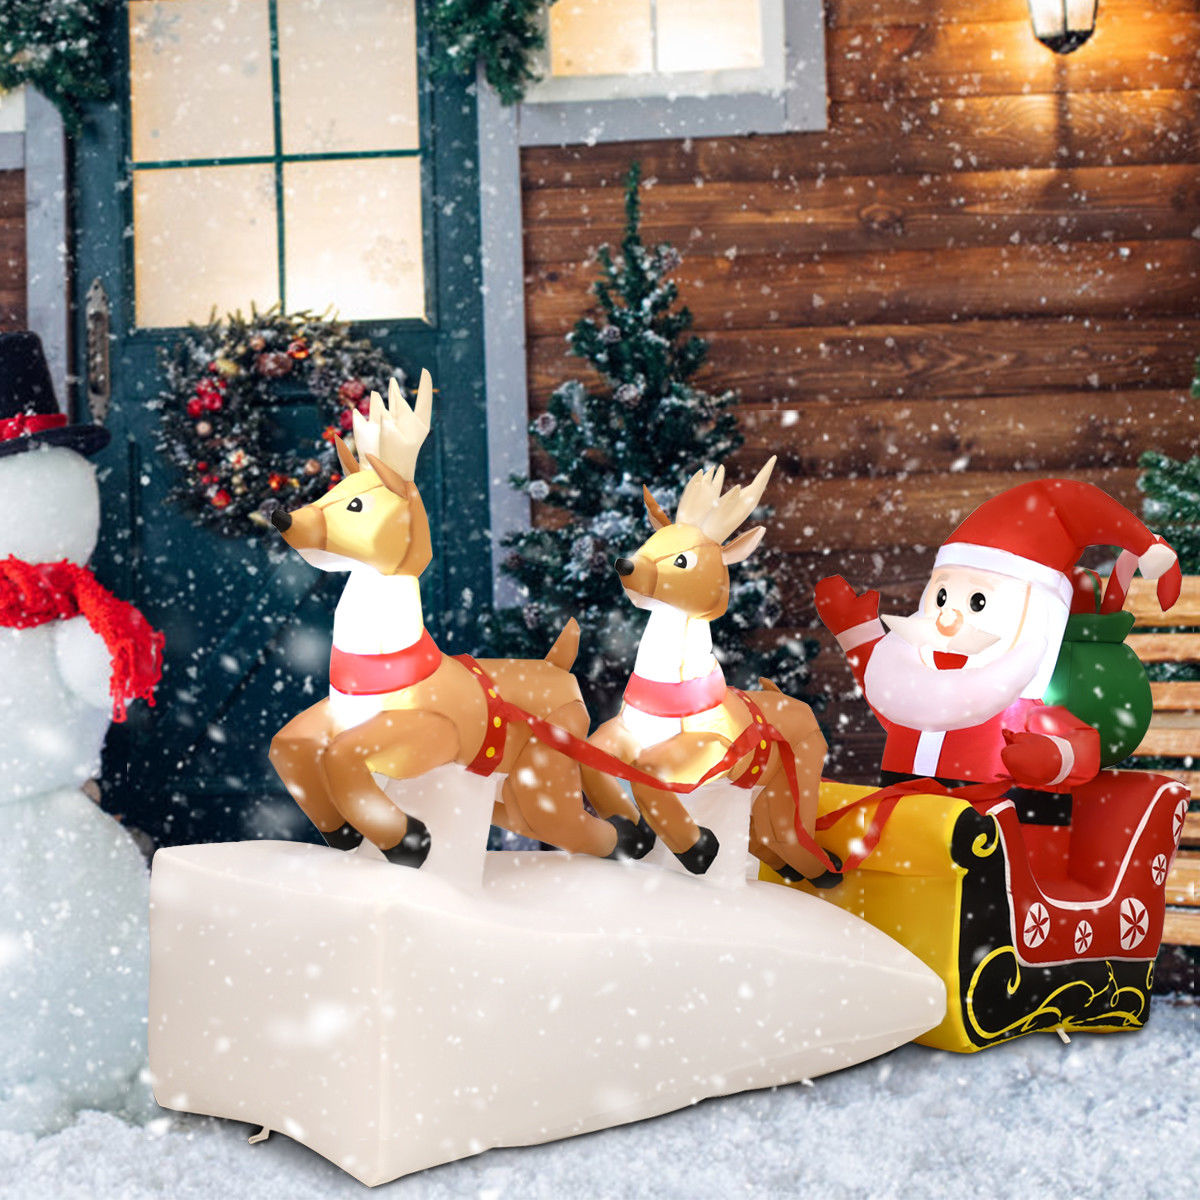 Costway 7 Christmas Decoration Inflatable Santa Claus On Sleigh 2